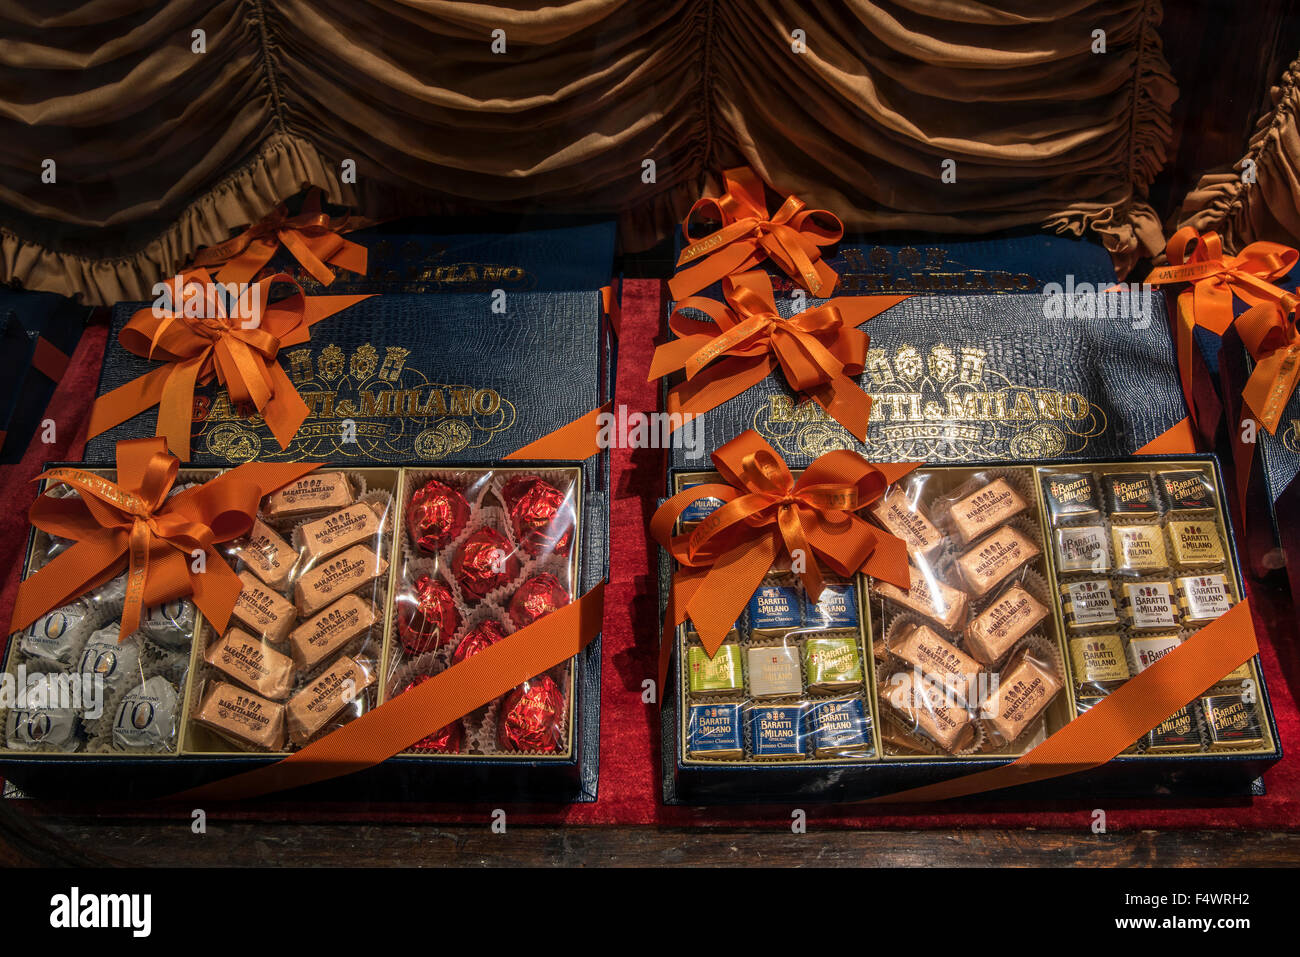 Chocolate gift boxes on sale at Caffe Baratti & Milano chocolate and coffee shop, Turin, Piedmont, Italy - Stock Image